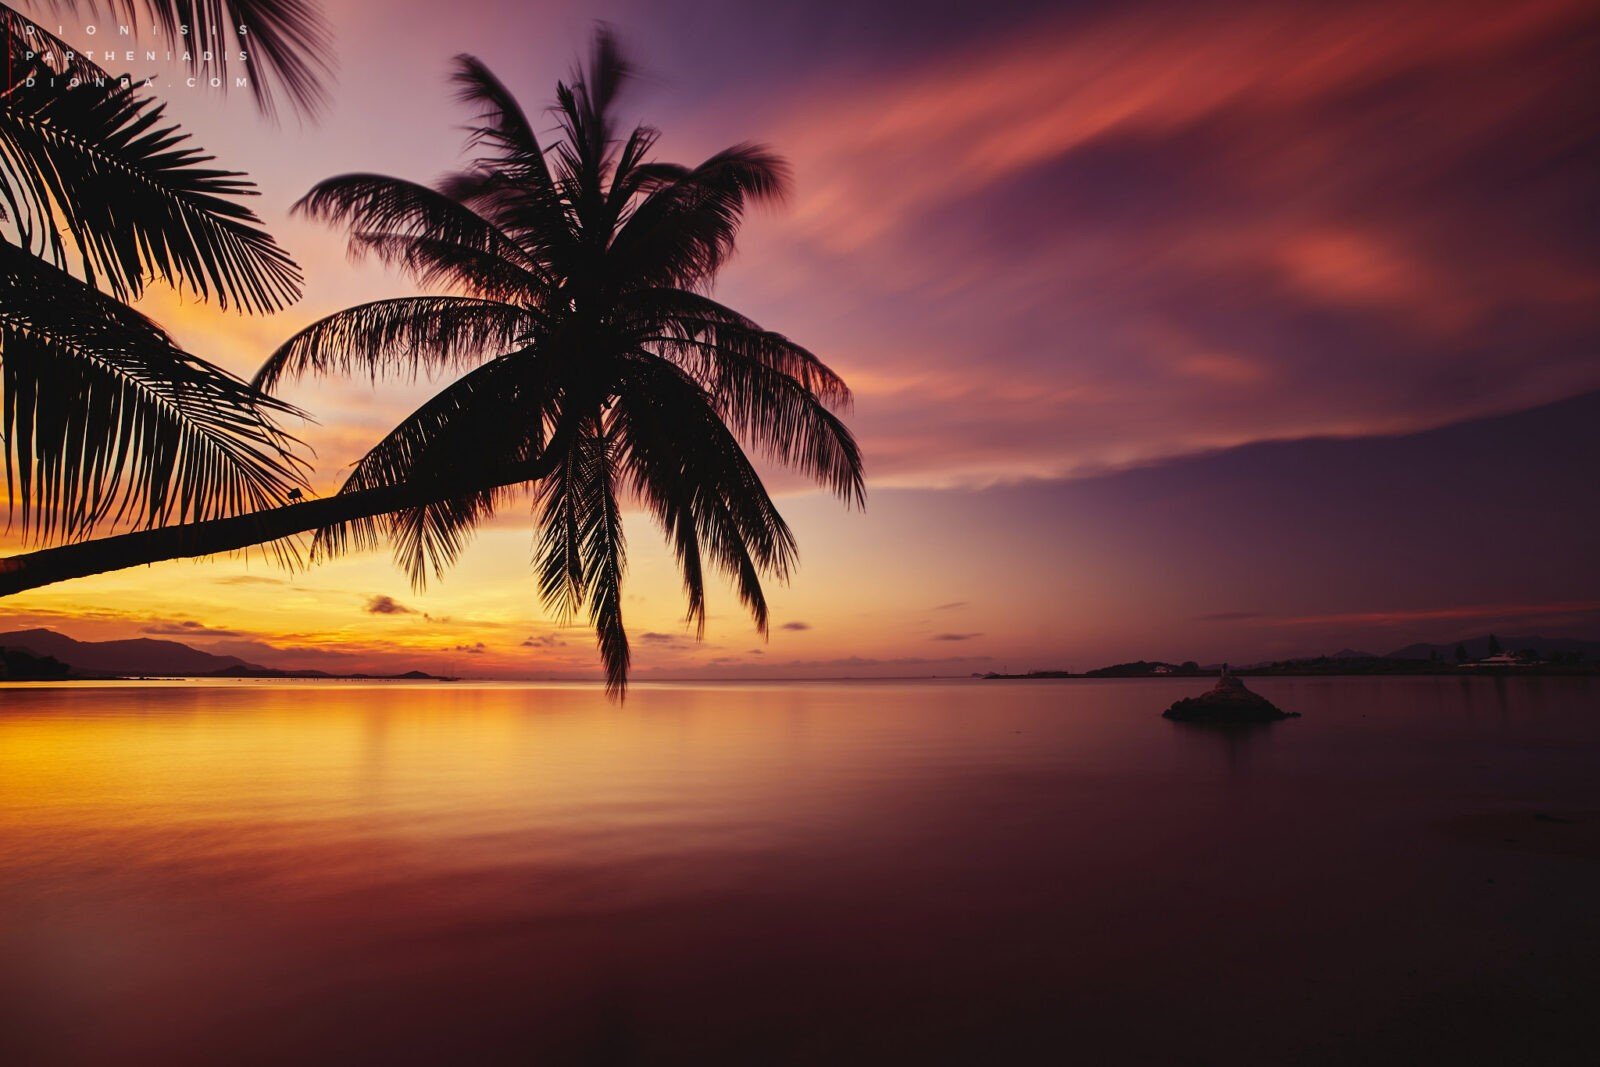 Canada Wallpaper Hd Iphone 50 Palm Trees Sunset Wallpapers Hd High Quality Download